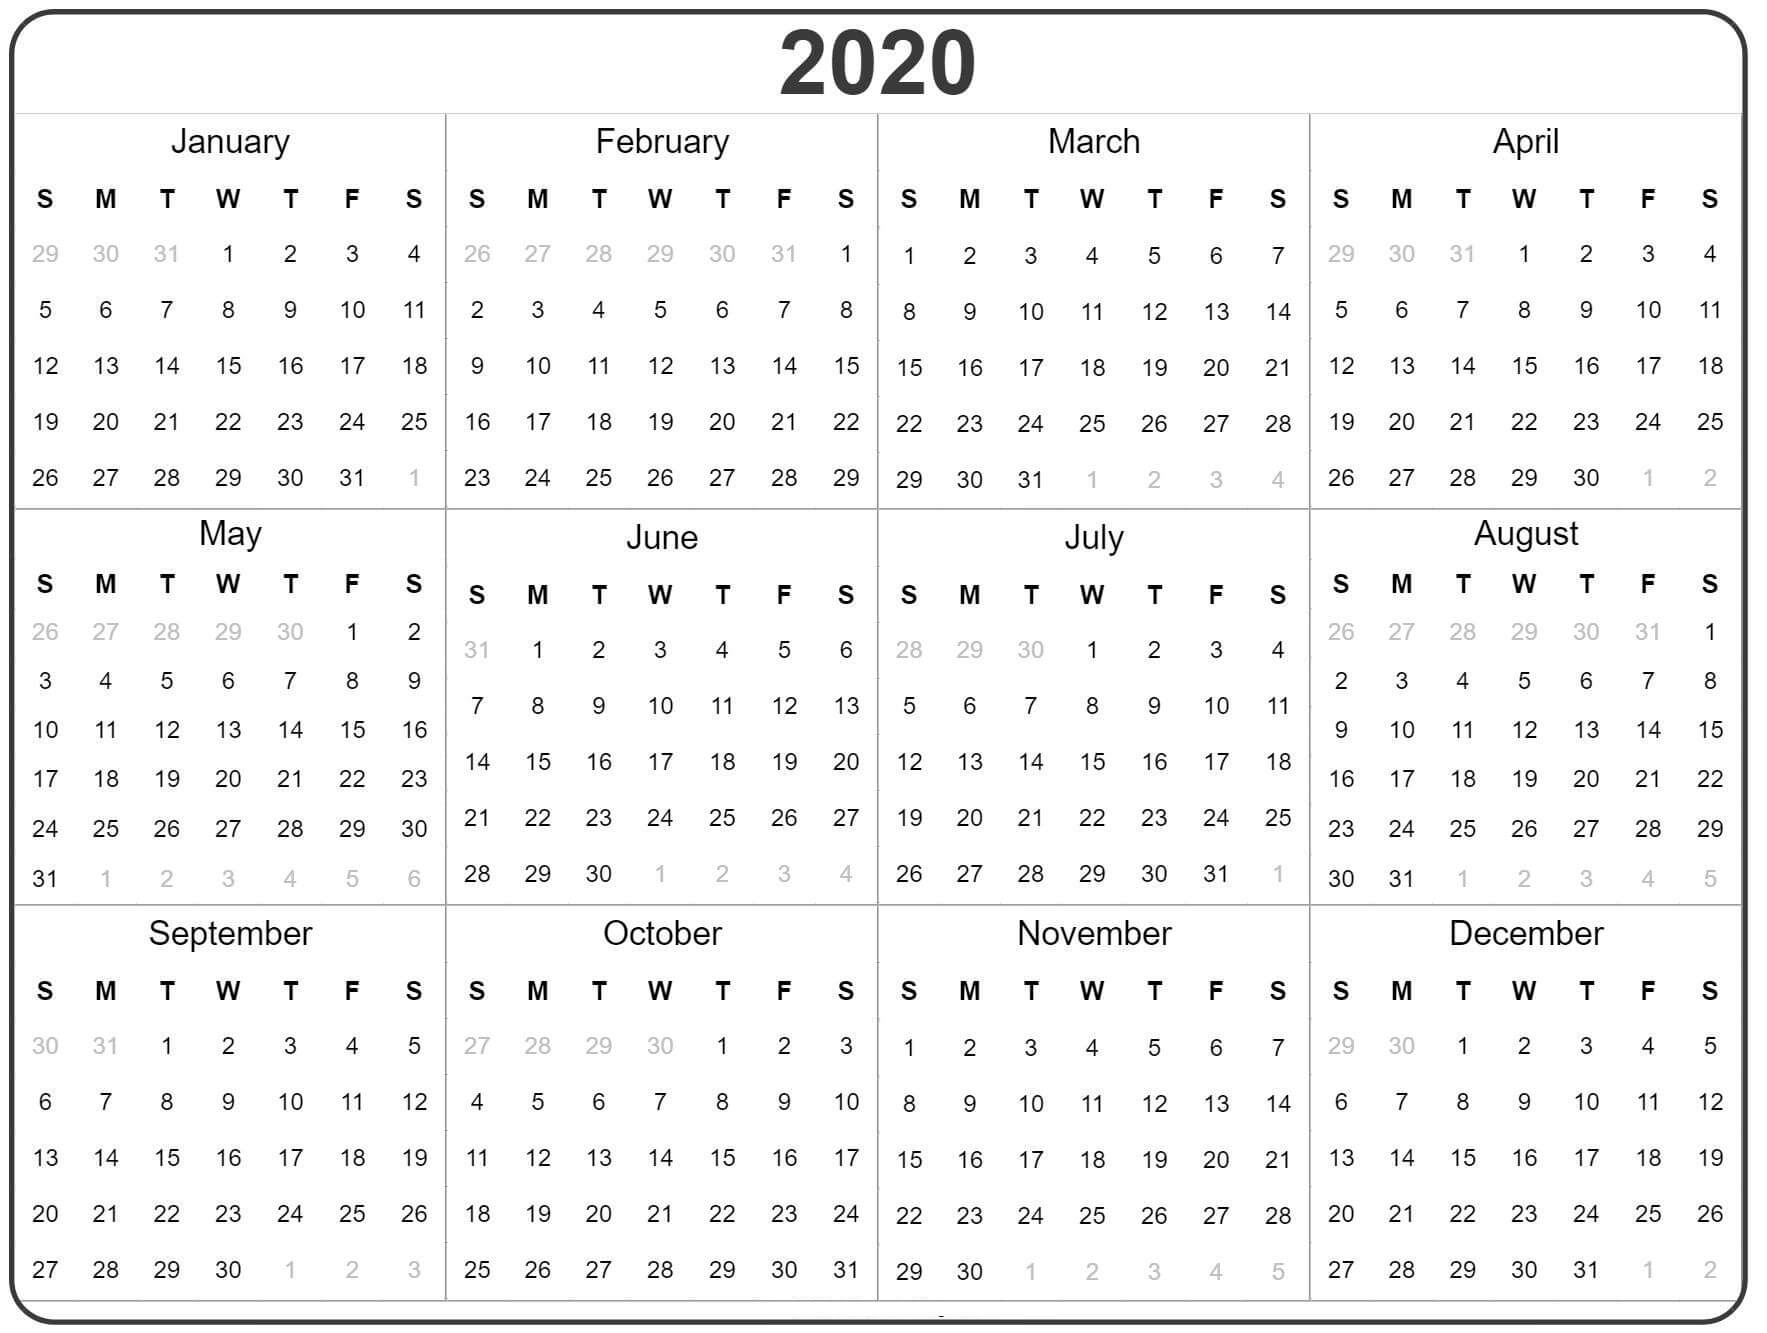 Free Yearly Calendar 2020 With Notes - 2019 Calendars For regarding Calendar At A Glance Printable 2020